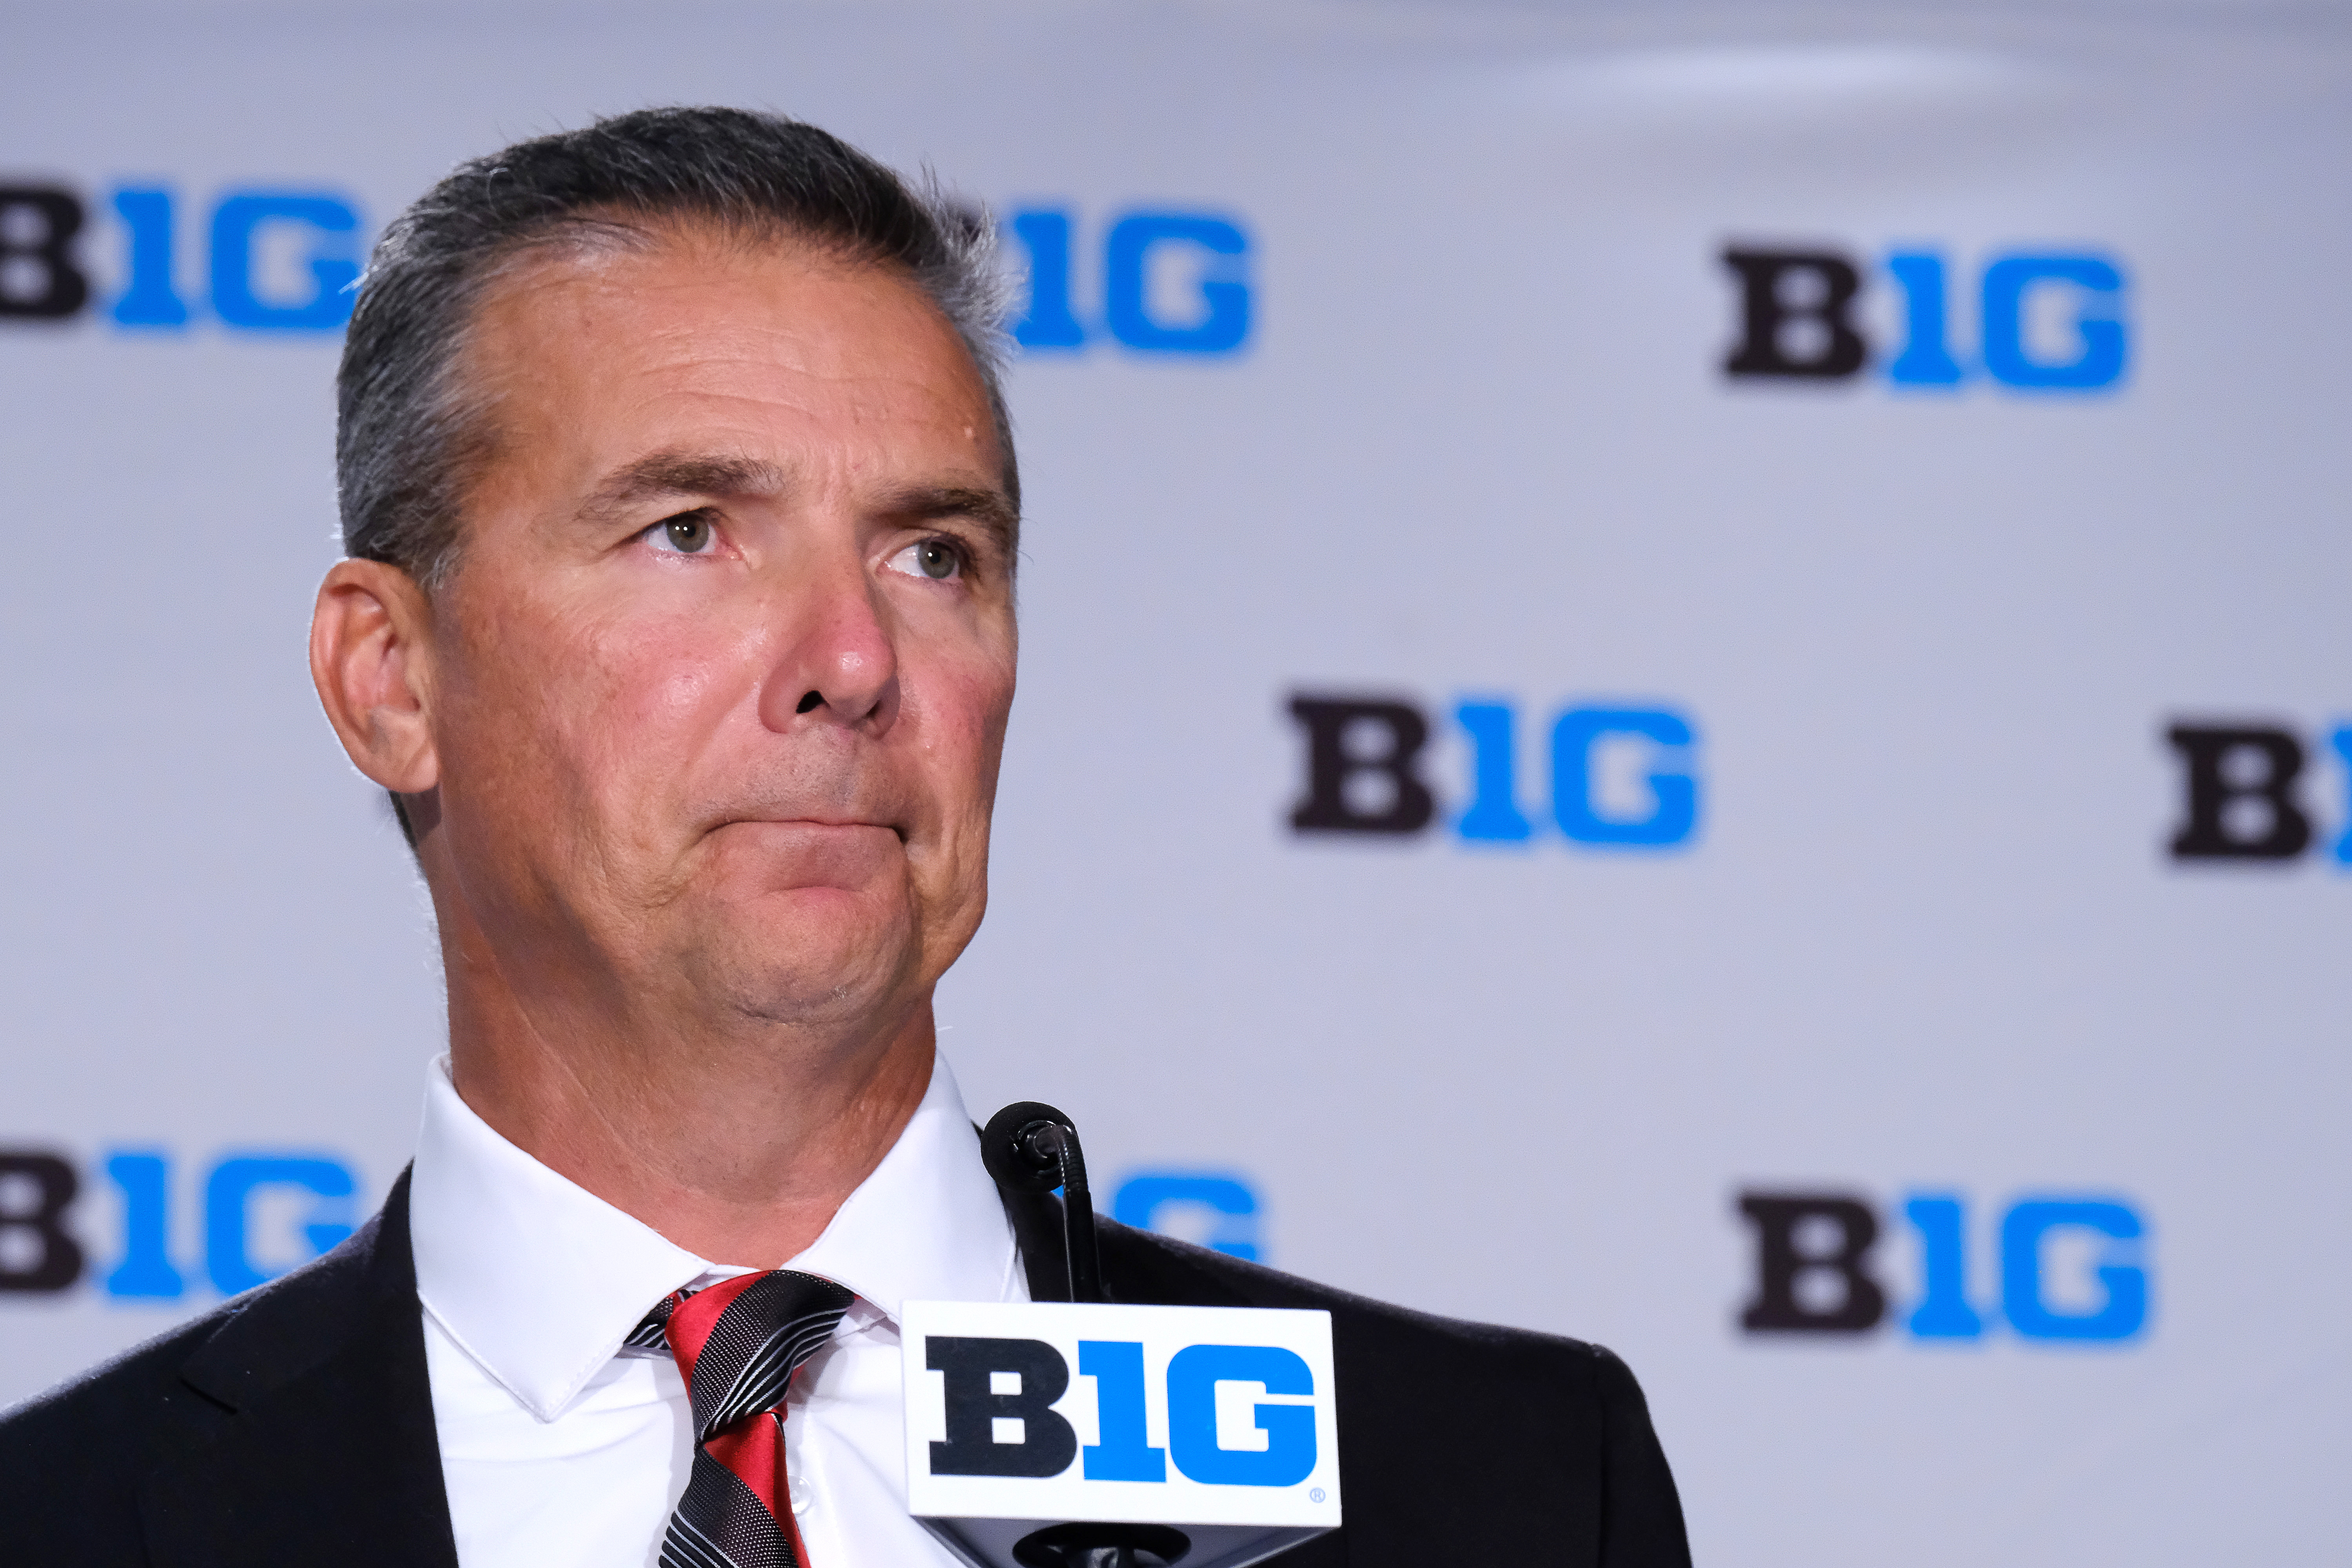 Ohio State Football head coach Urban Meyer speaks to the media during the Big Ten Football Media Days event on July 24, 2018  in Chicago, Illinois.